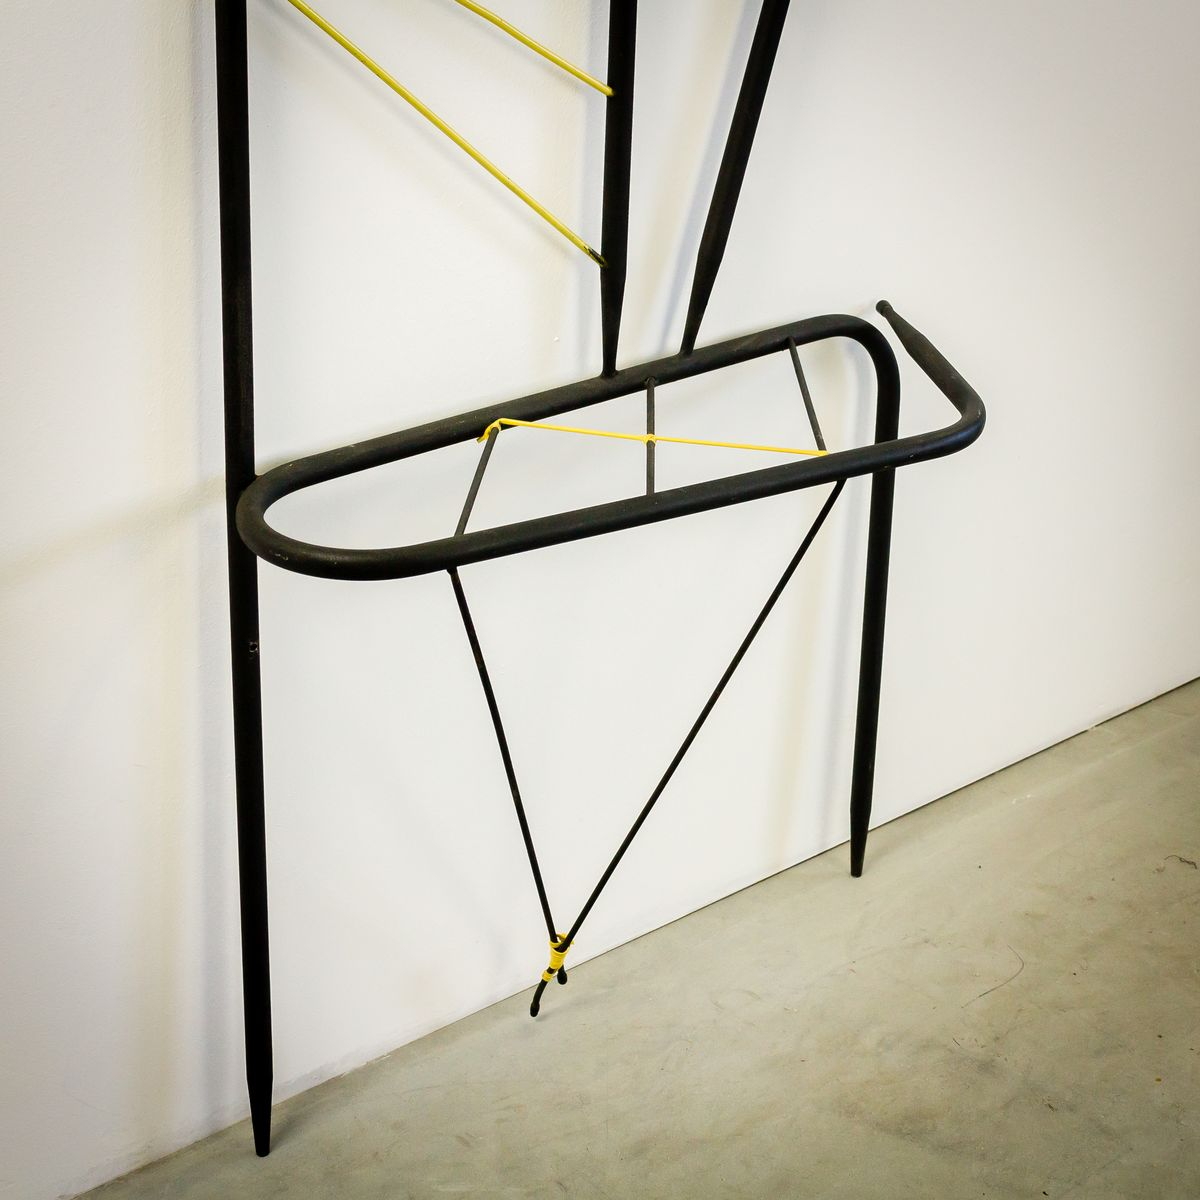 french metal coat rack with mirror s for sale at pamono - french metal coat rack with mirror s